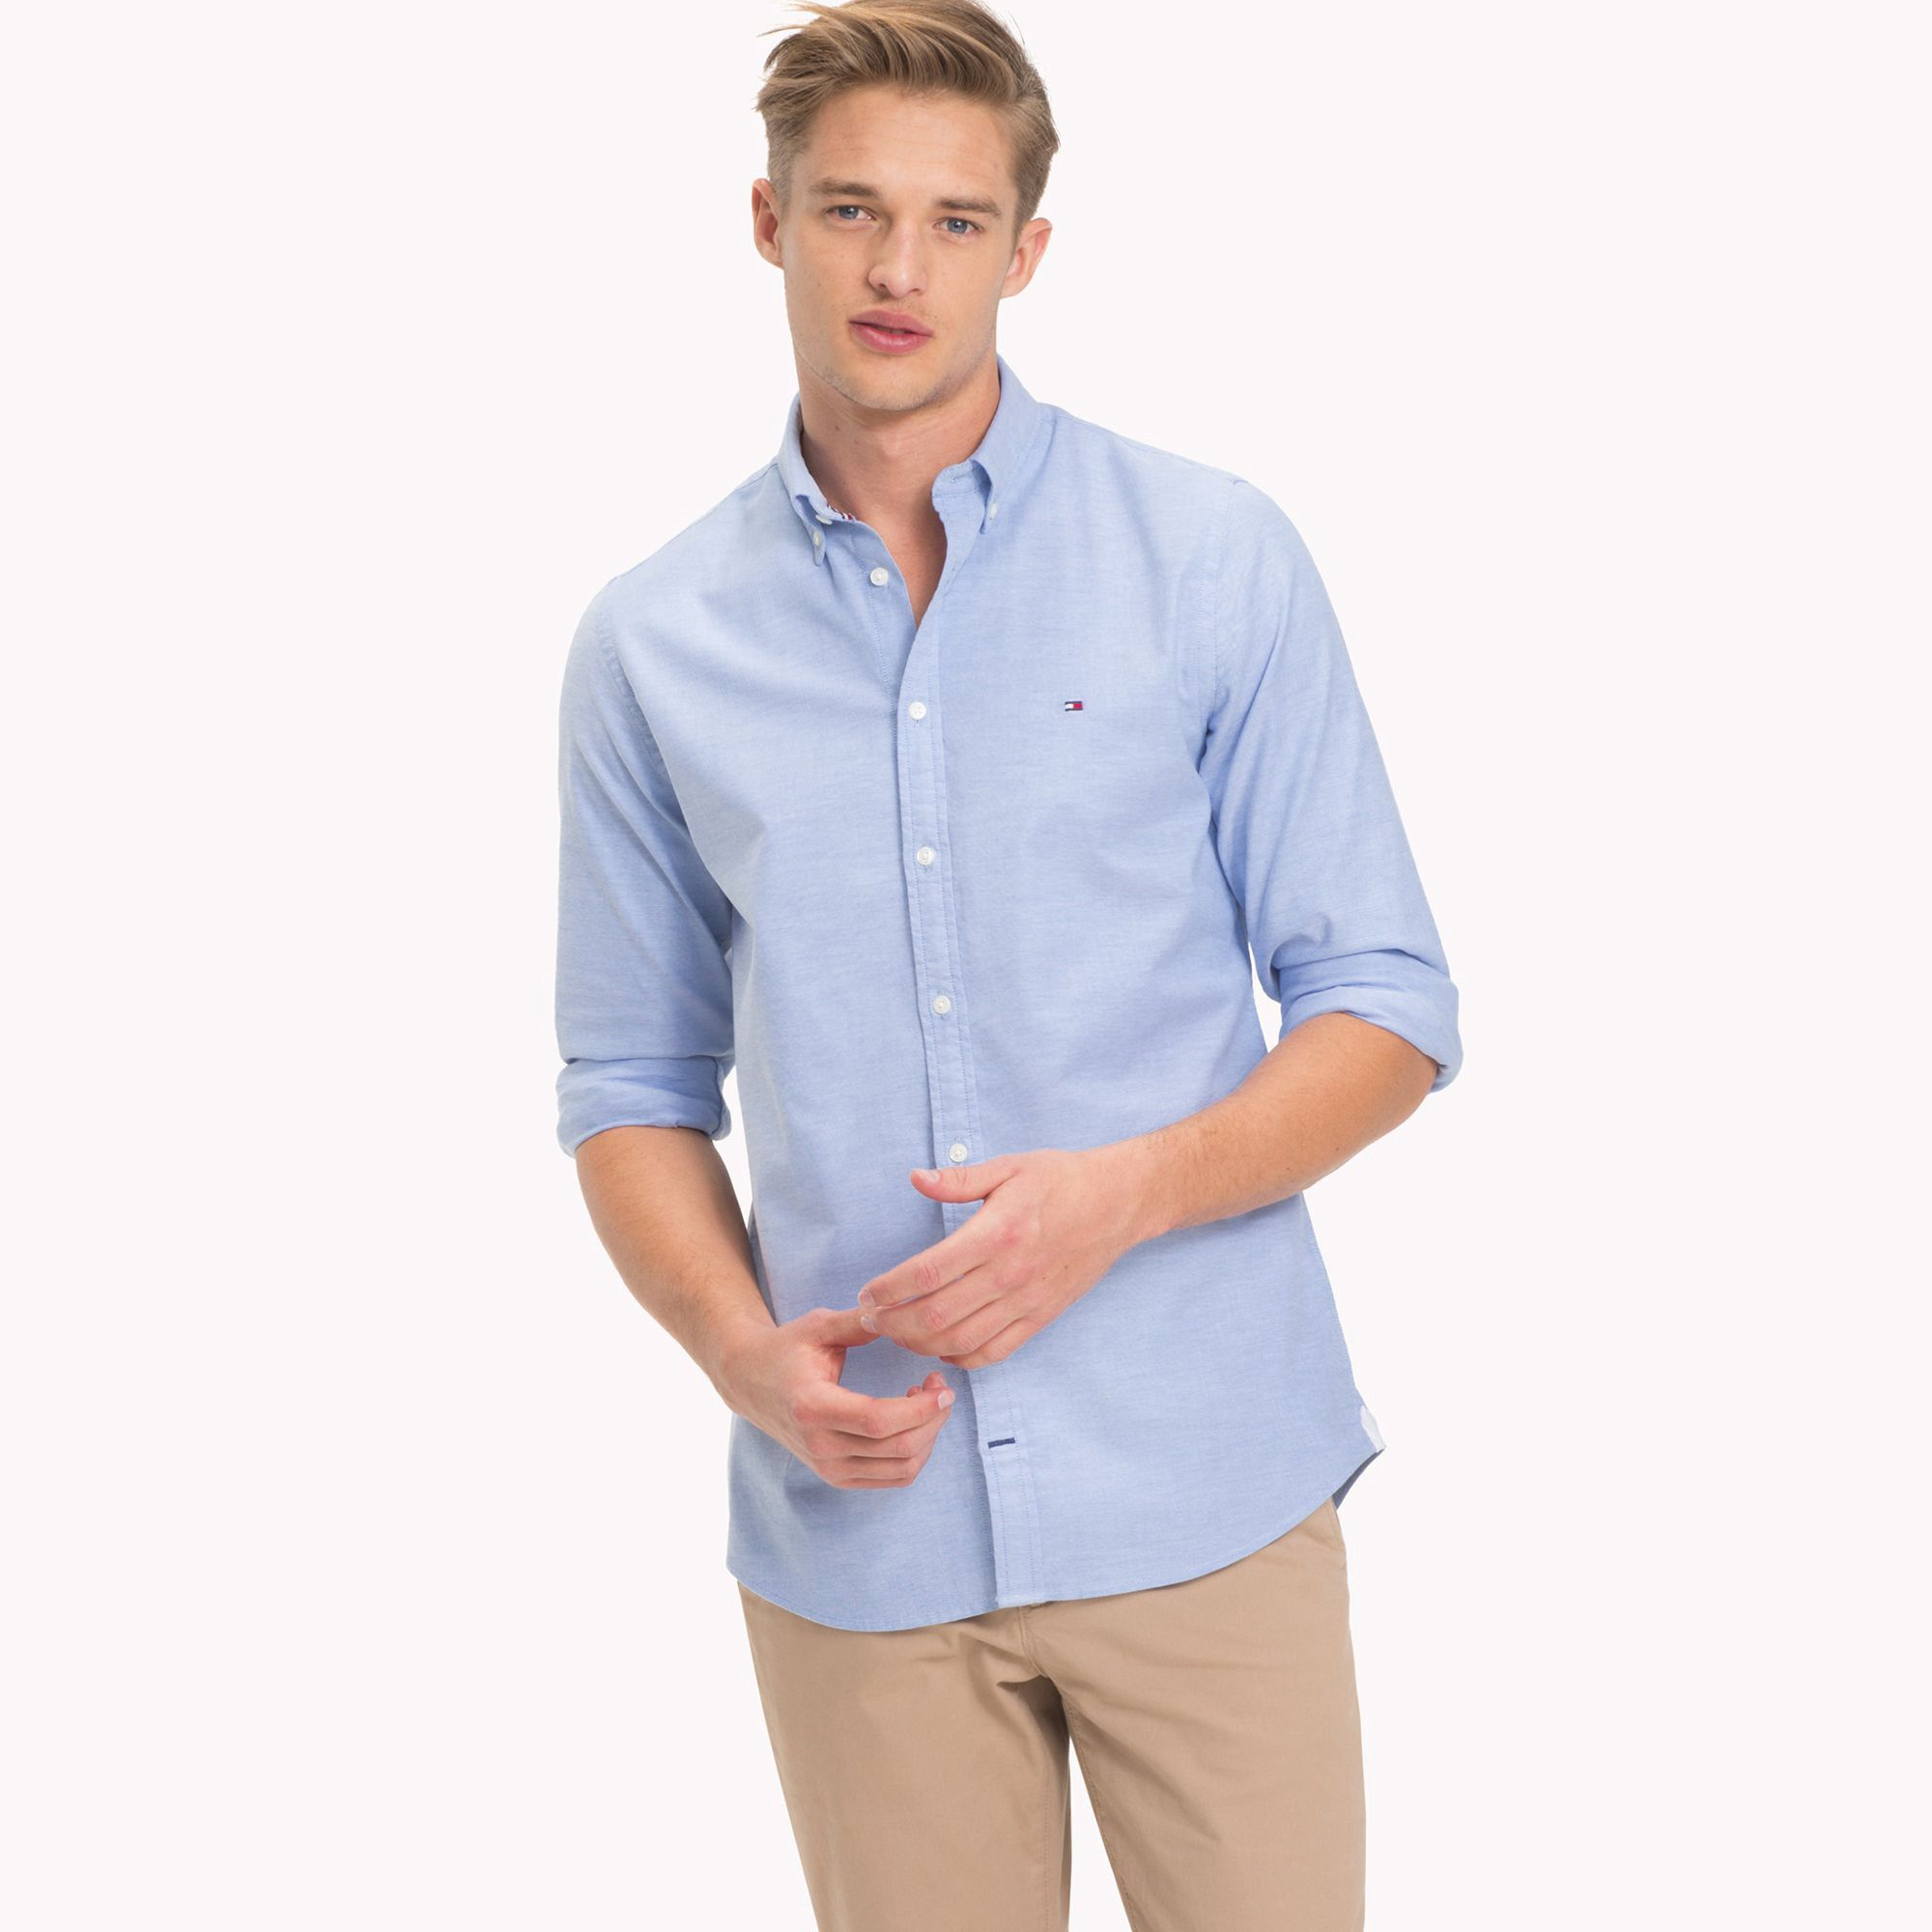 Tommy Hilfiger Slim Fit Shirt Blue Xl | Casual shirts for